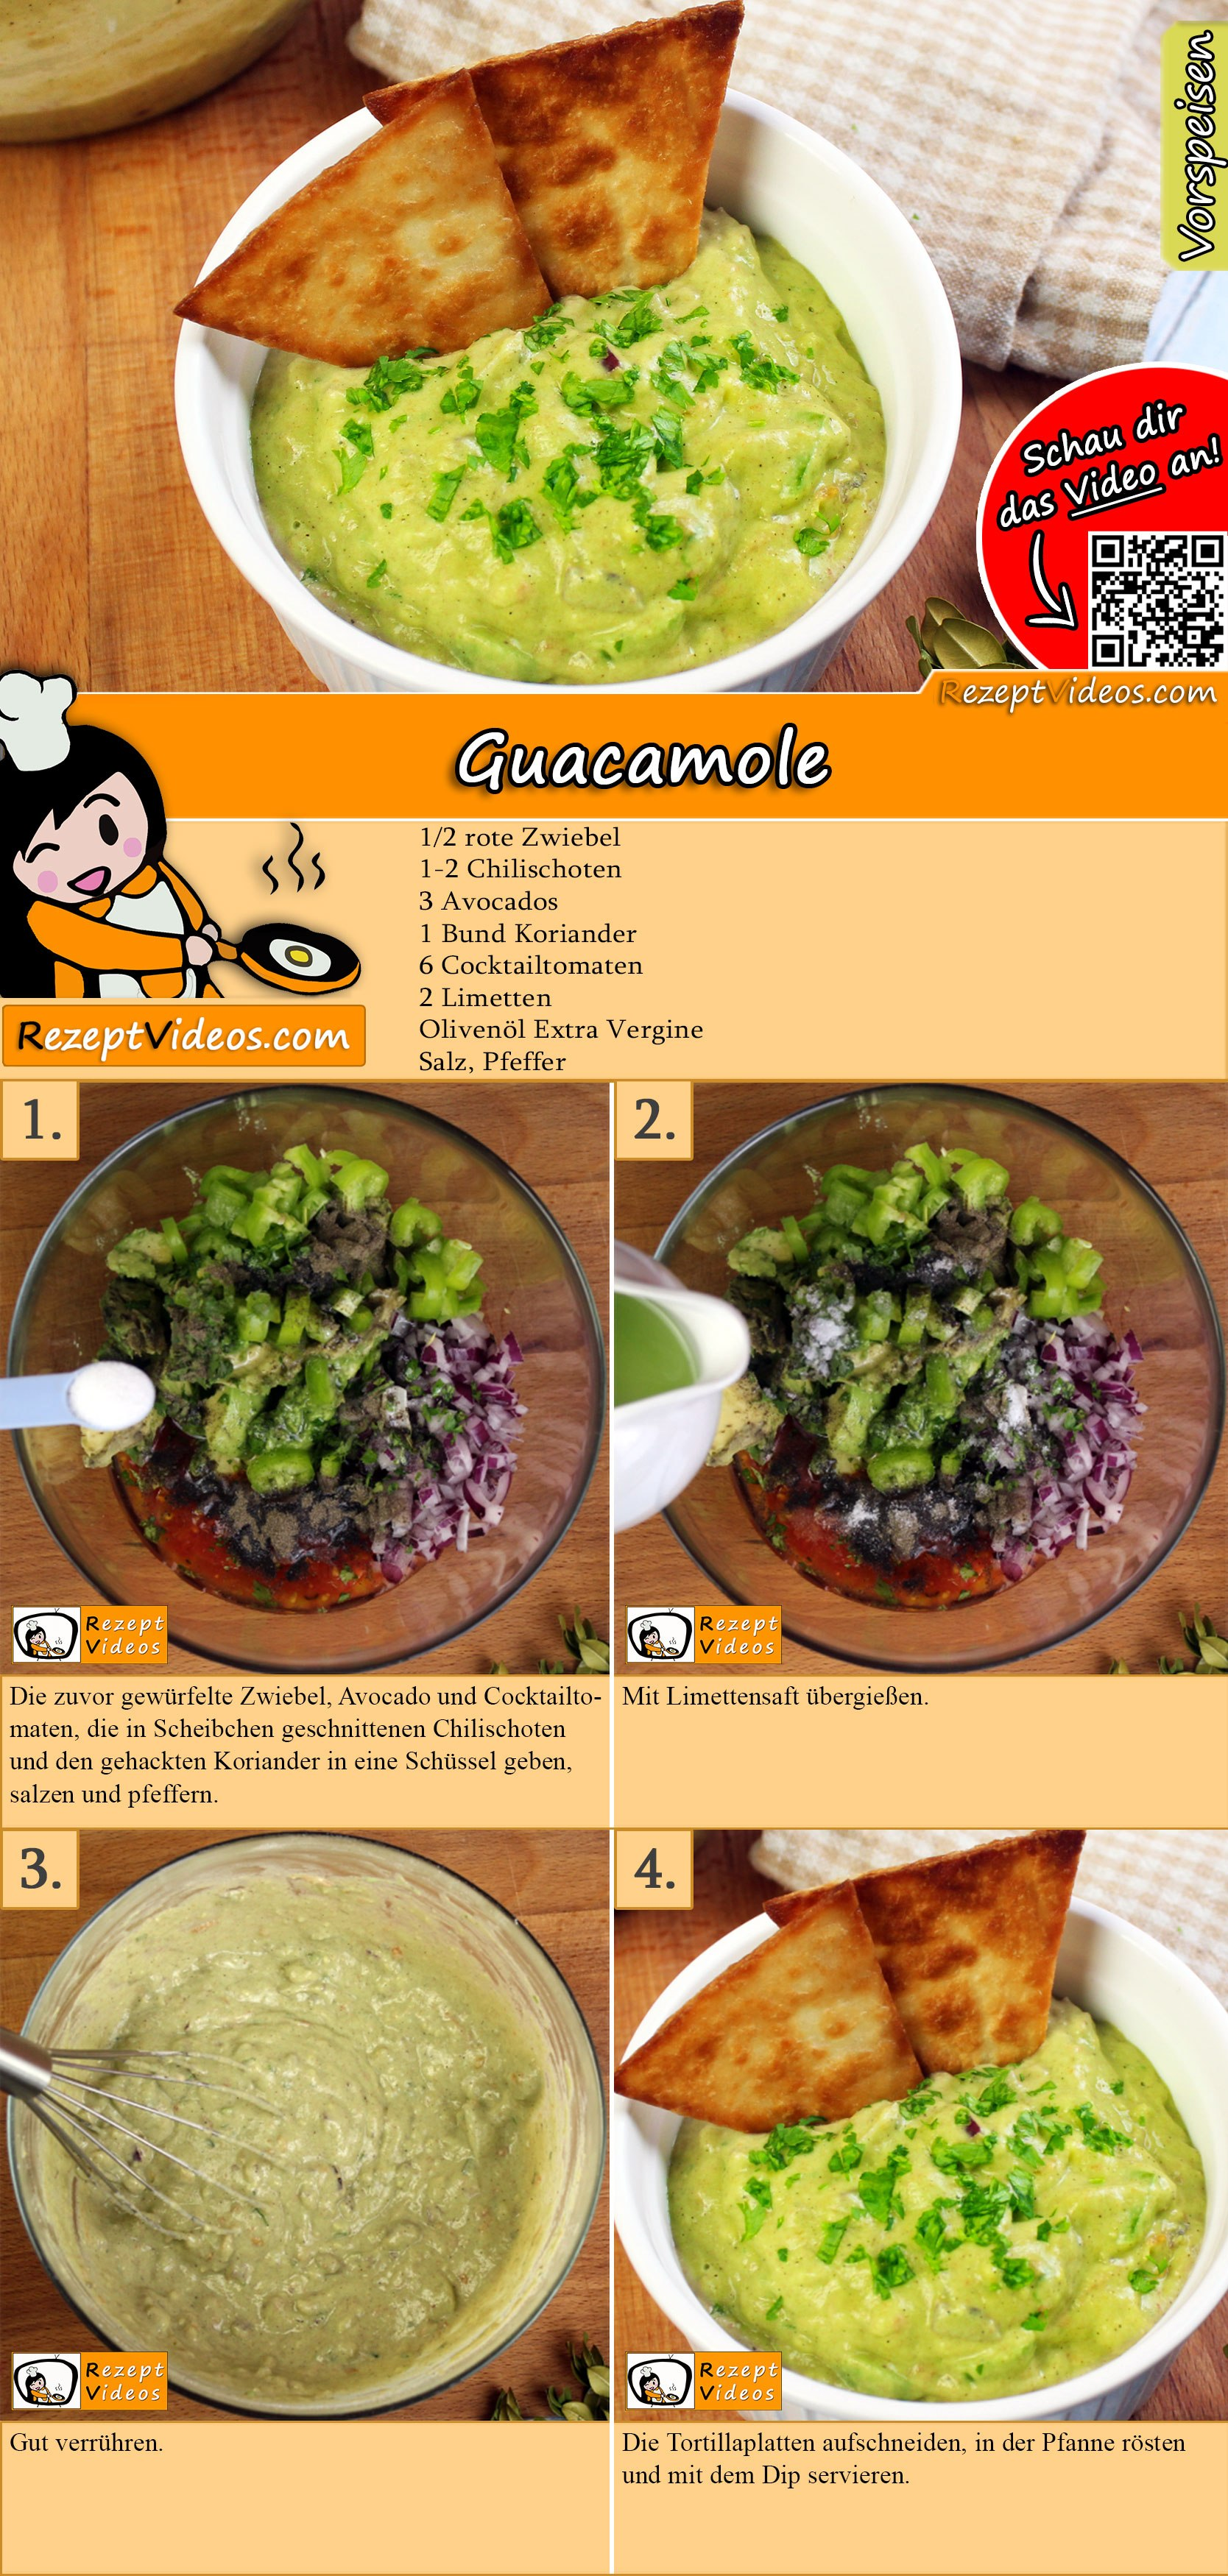 Guacamole Rezept mit Video